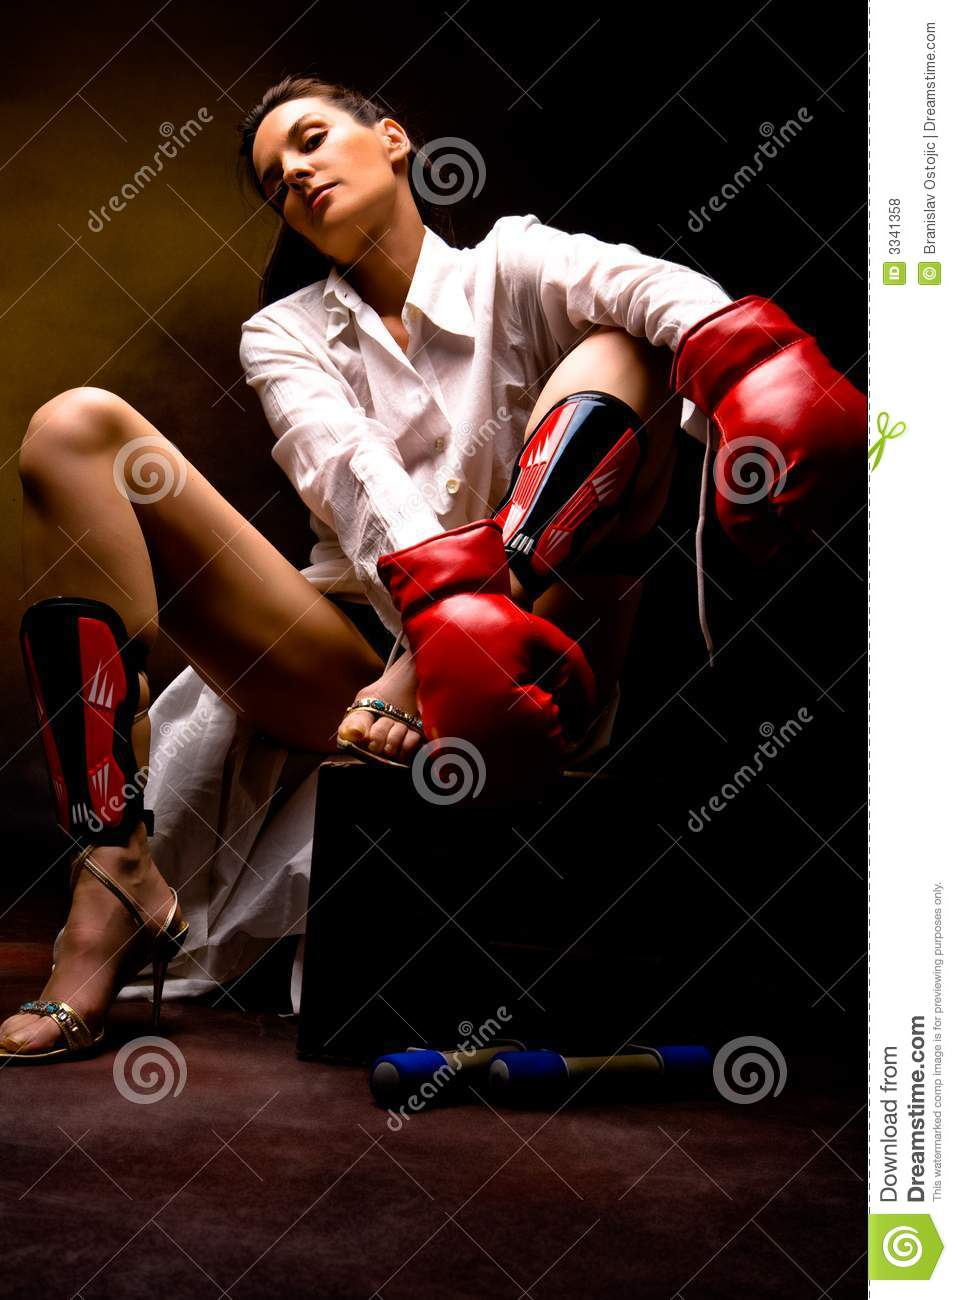 Fitness lady royalty free stock photos image 3341358 for Lady fitness